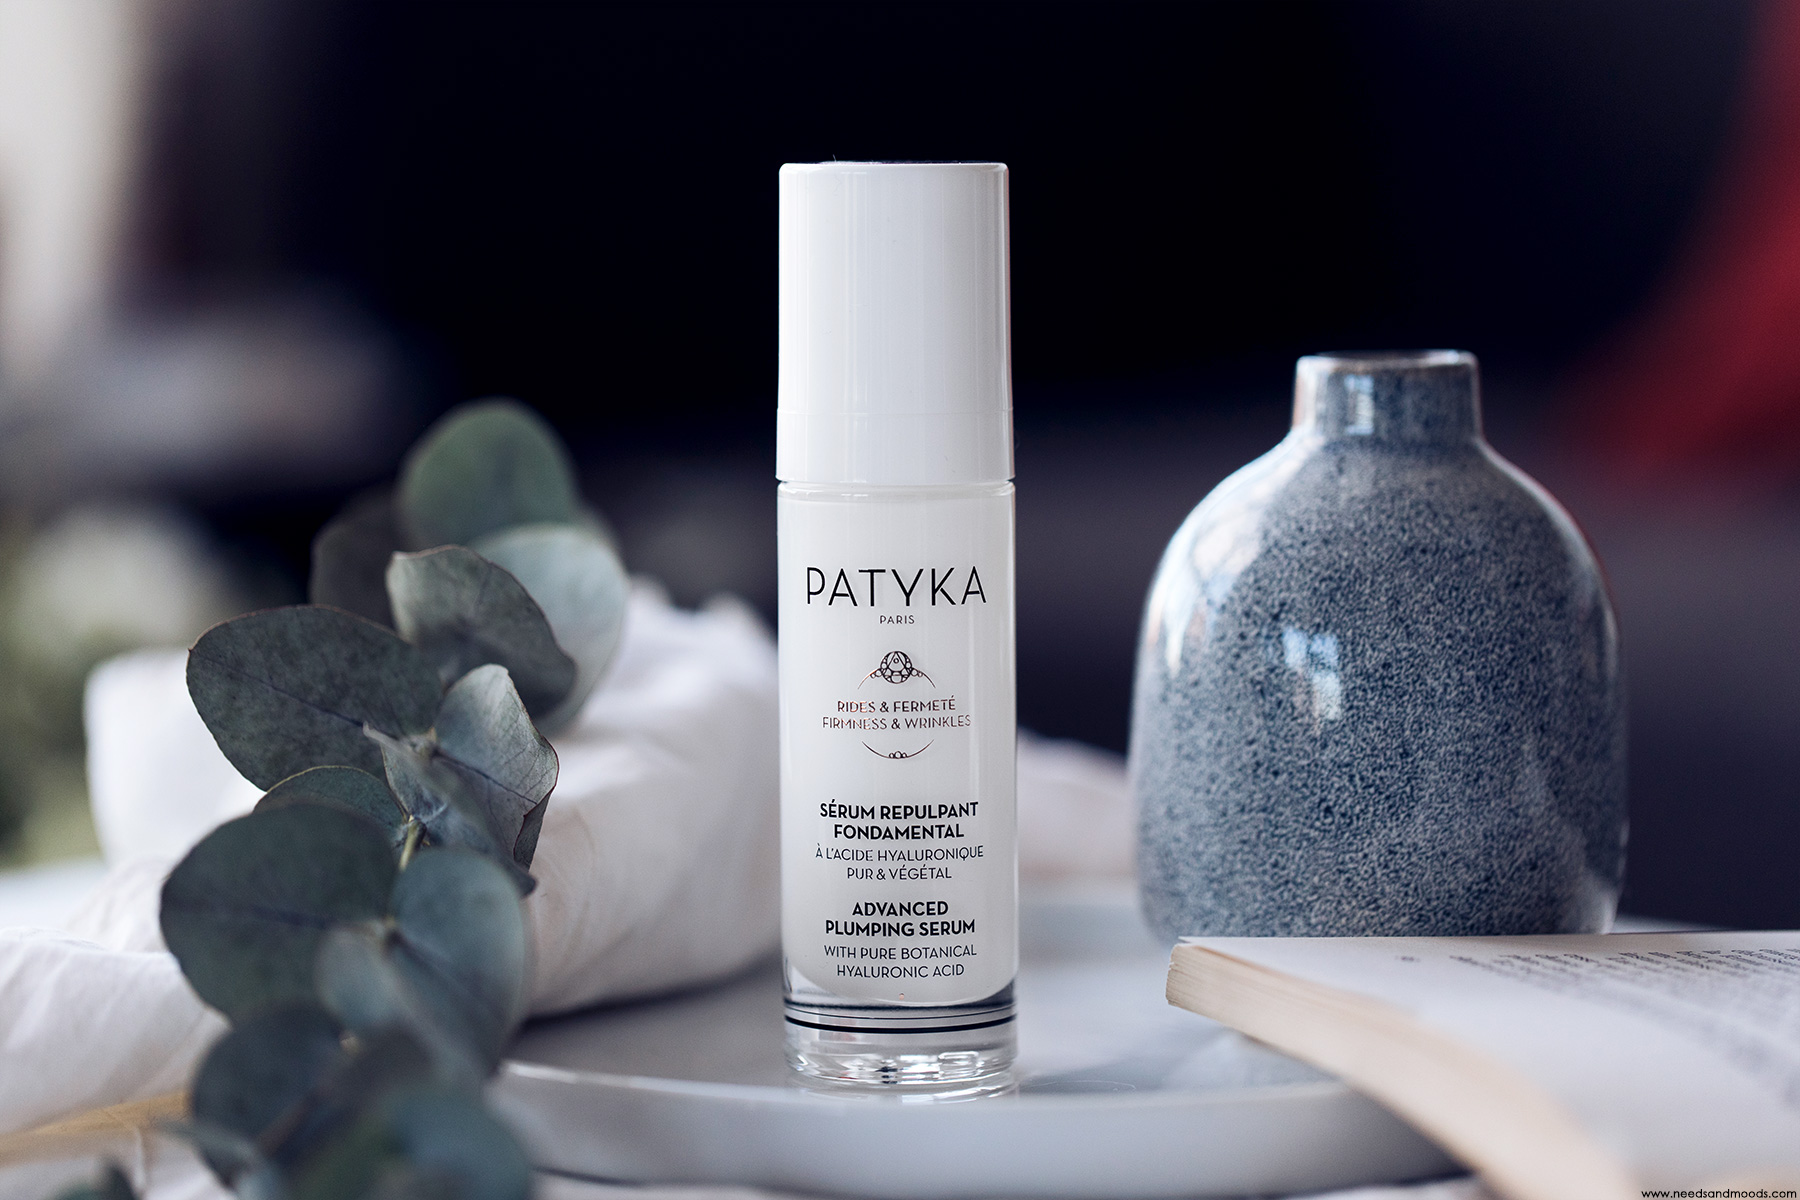 patyka serum repulpant fondamental bio